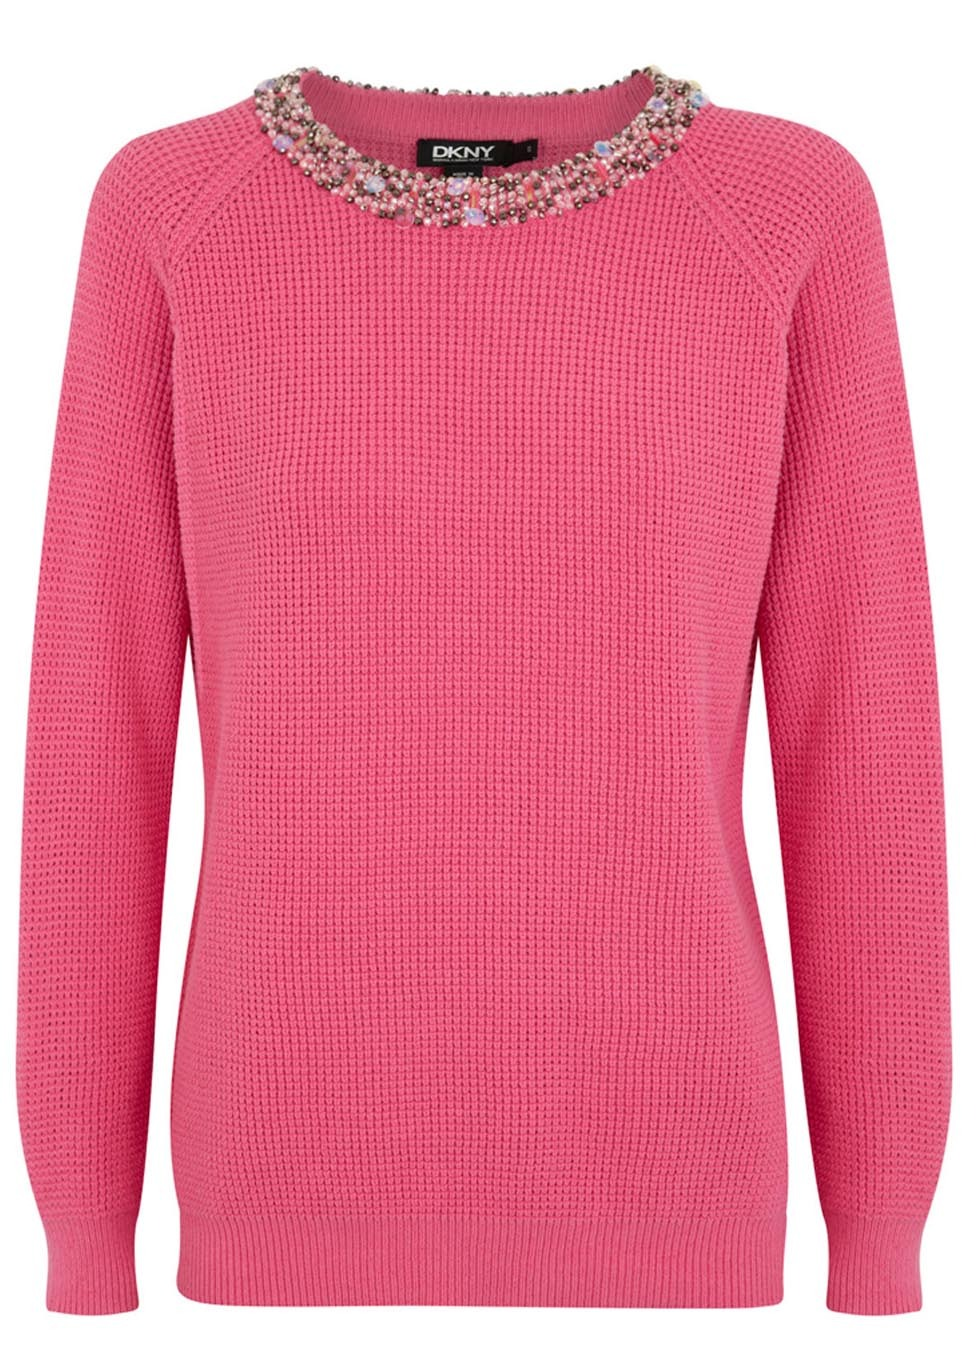 Pink Embellished Jumper Size - neckline: round neck; pattern: plain; style: standard; predominant colour: pink; occasions: casual, creative work; length: standard; fibres: cotton - mix; fit: standard fit; sleeve length: long sleeve; sleeve style: standard; texture group: knits/crochet; pattern type: knitted - fine stitch; embellishment: beading; season: s/s 2014; wardrobe: highlight; embellishment location: neck